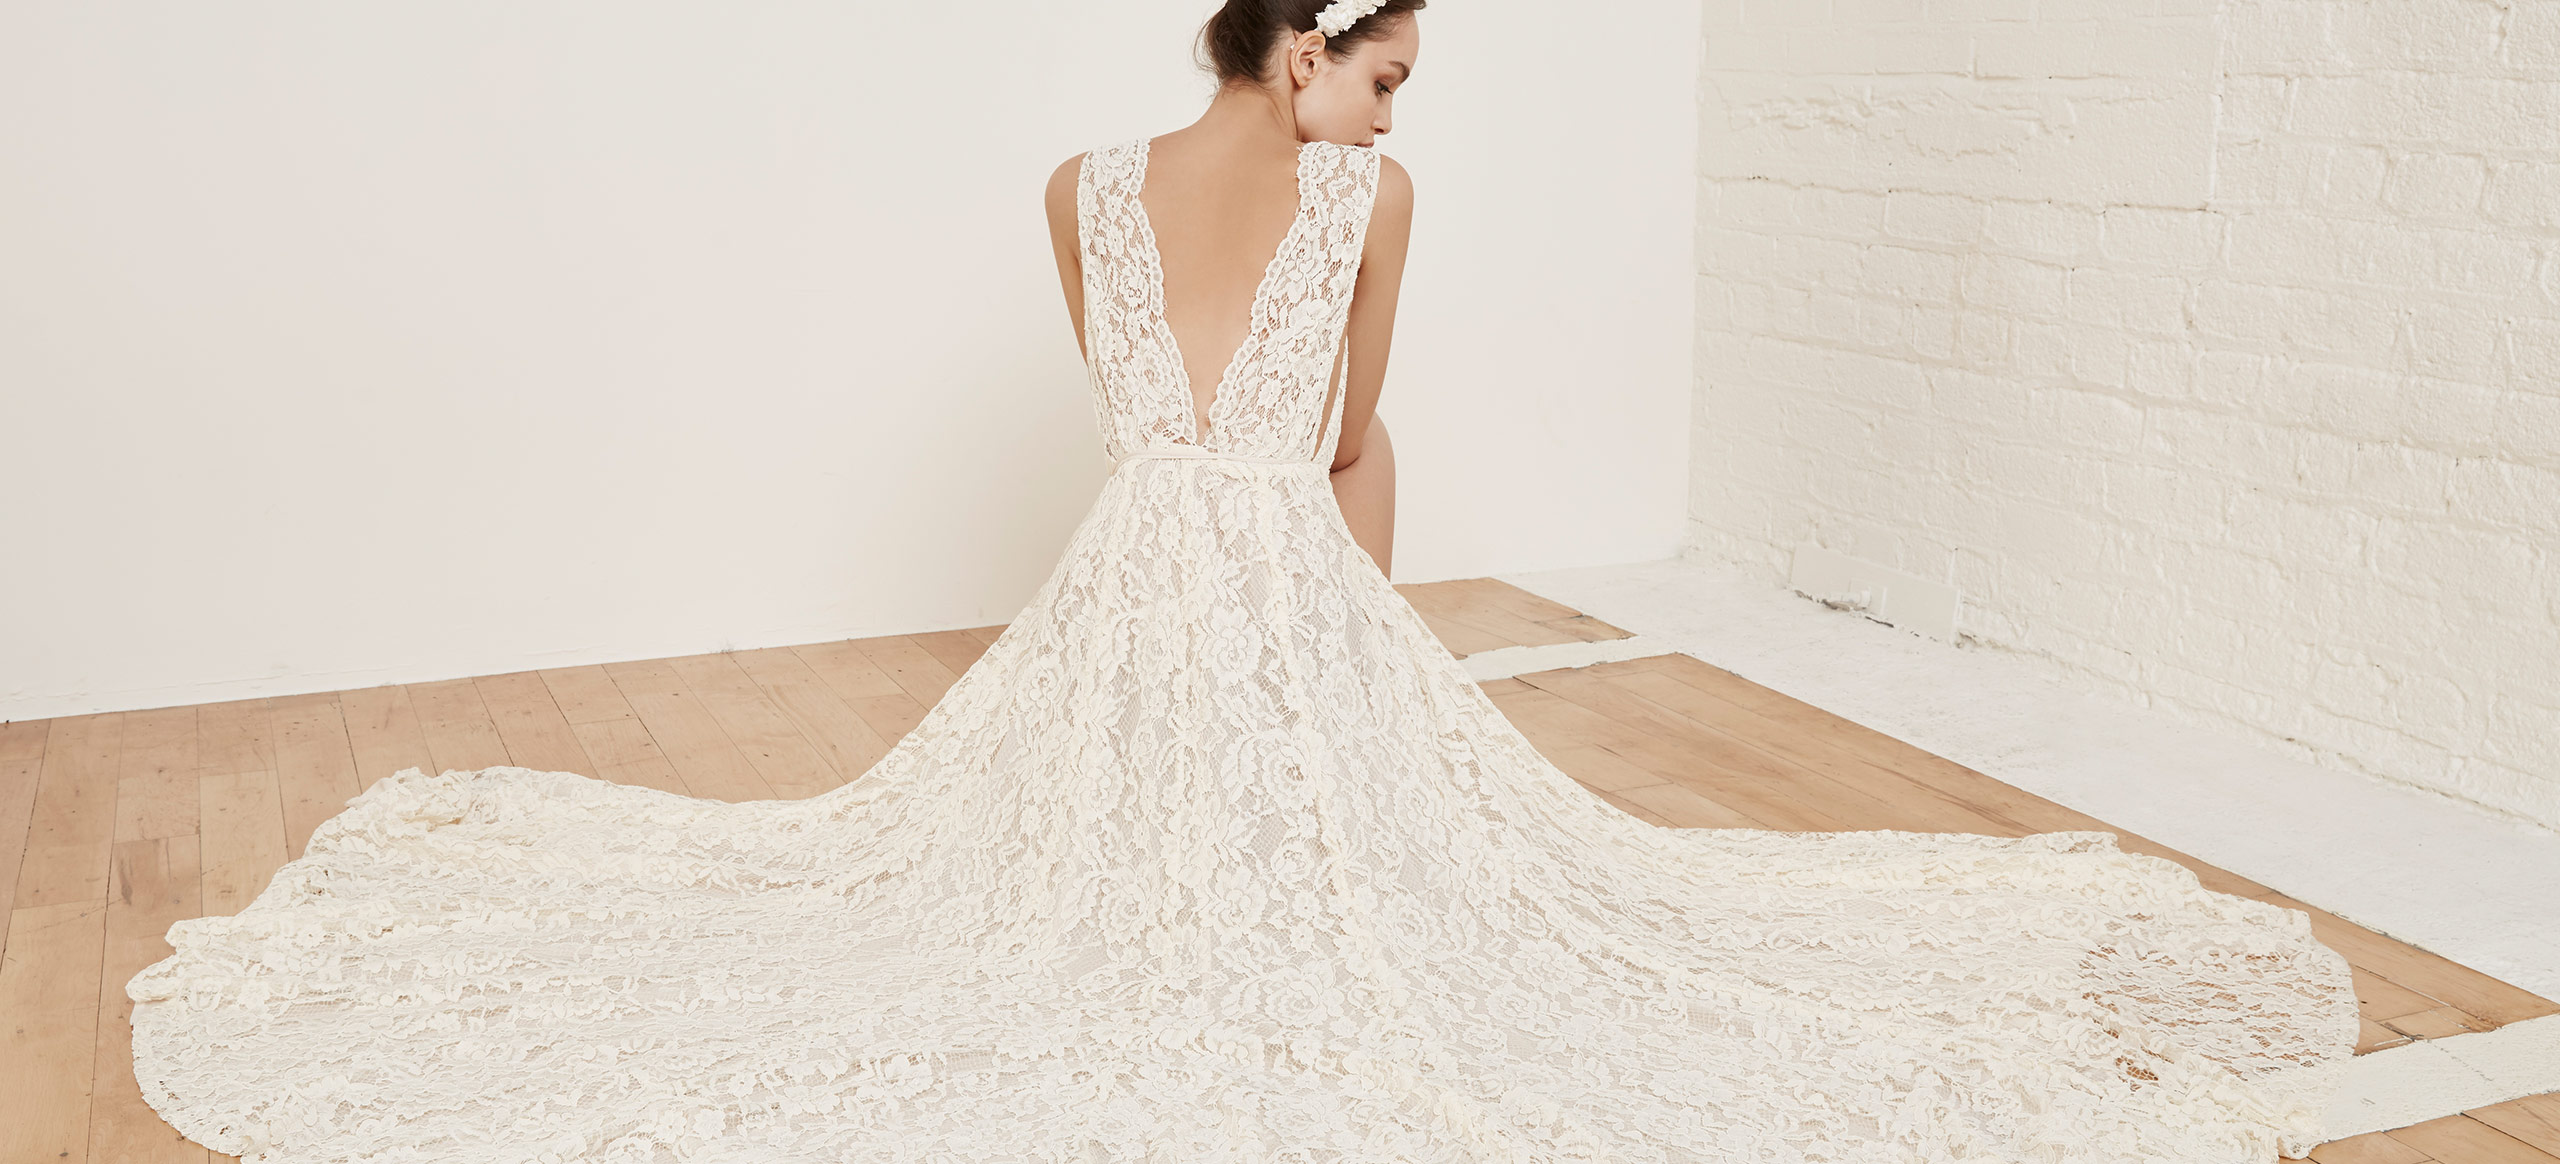 FRANCESCA_DRESS_WHITE_LACE_4